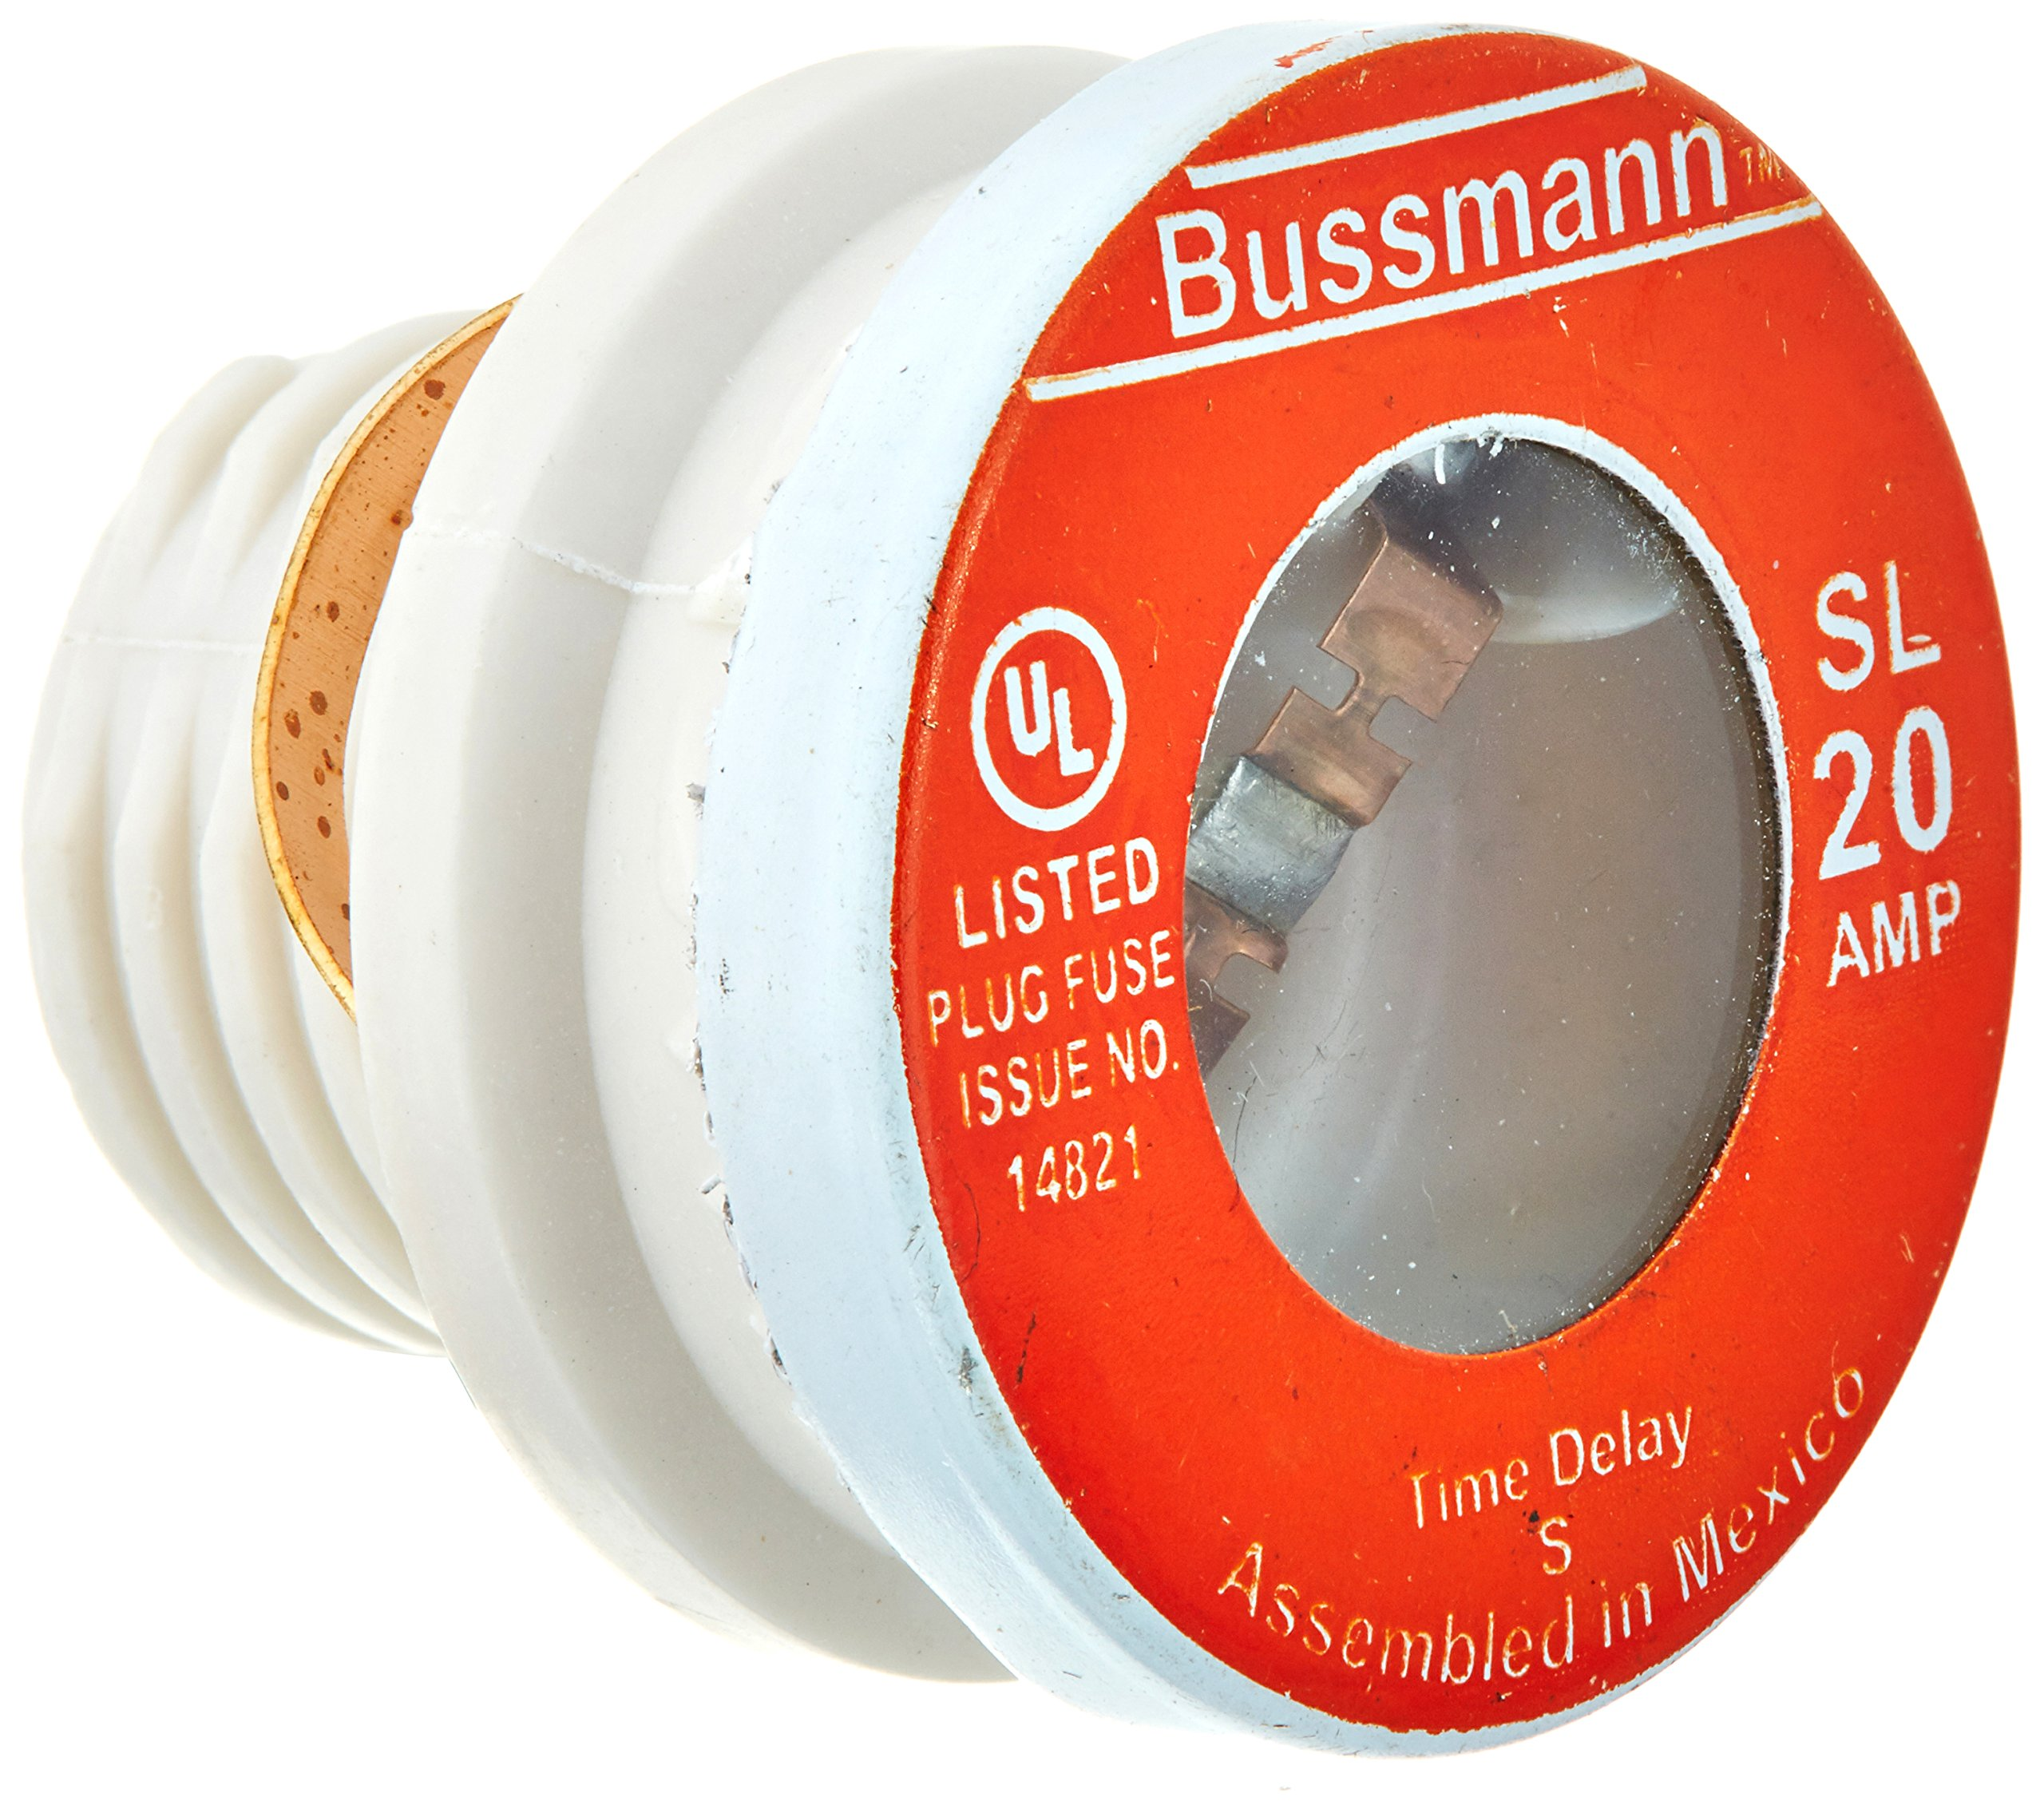 Bussmann SL-20 20 Amp Time Delay Loaded Link Rejection Base Plug Fuse, 125V